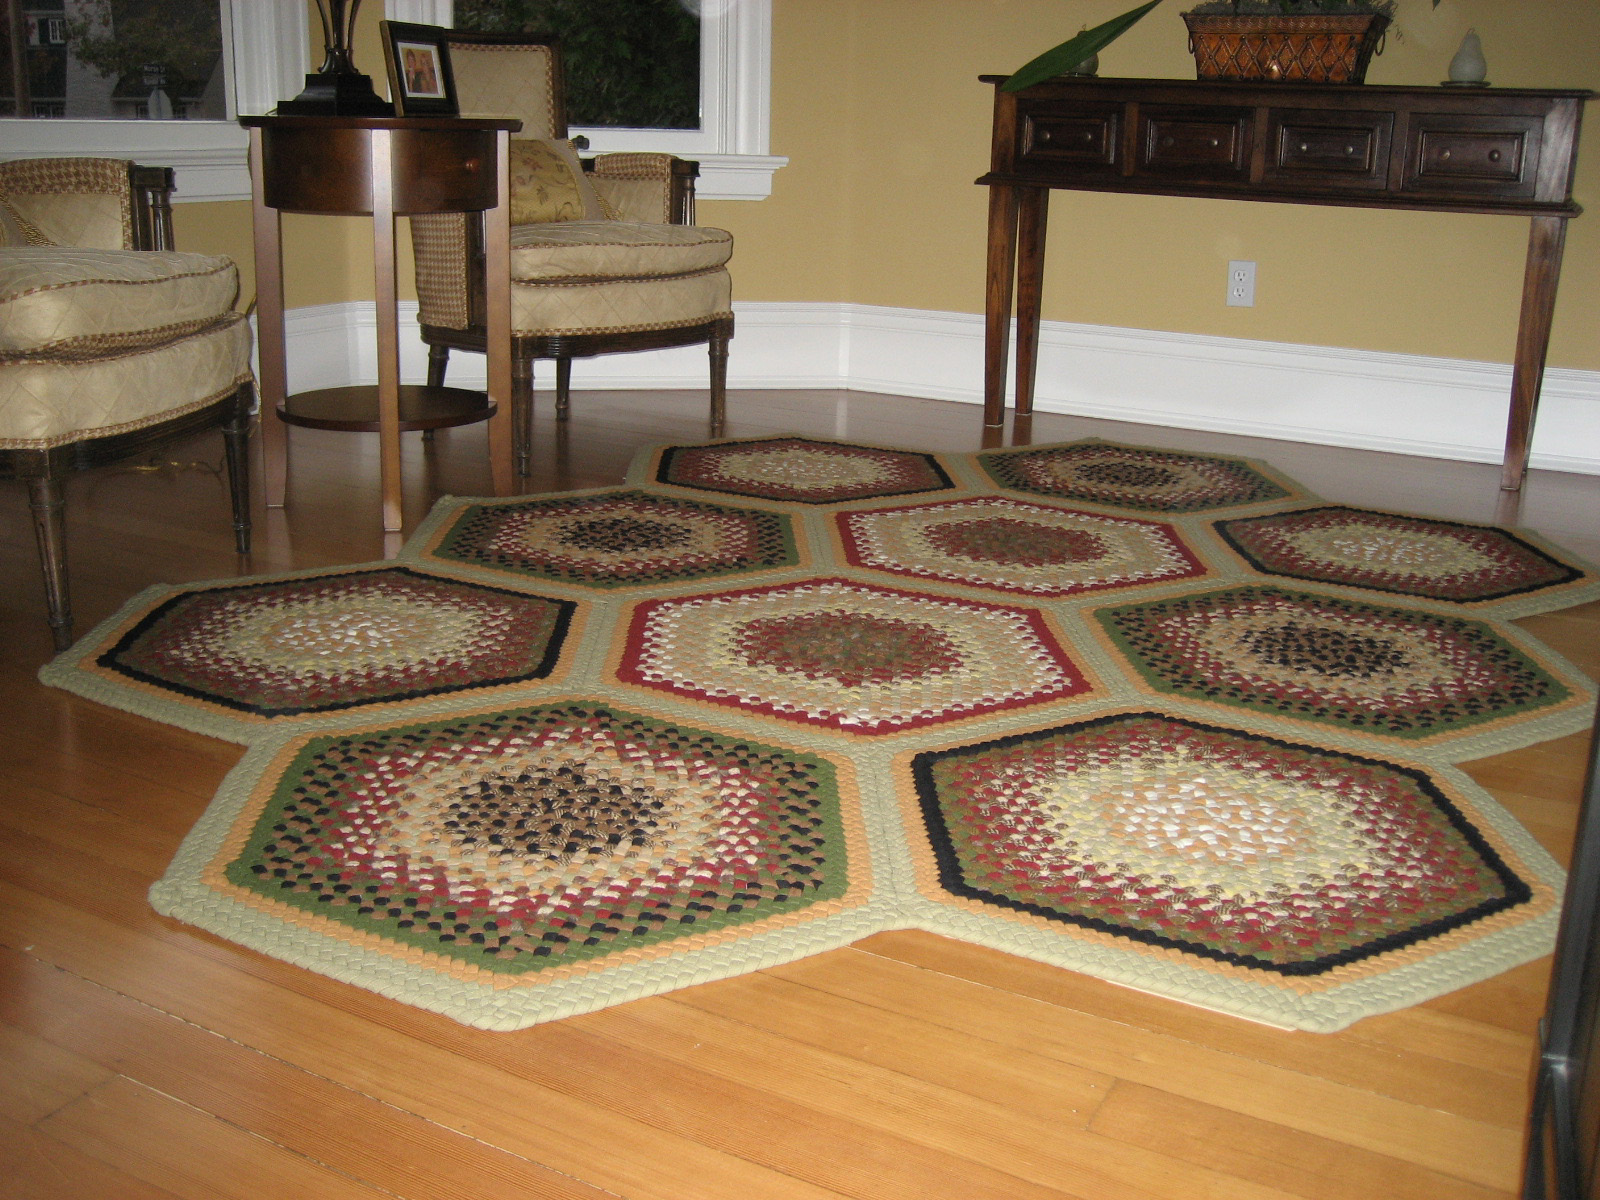 charming Hexagonal Braided Rugs in multicolor on wooden floor makes family room look more beautiful